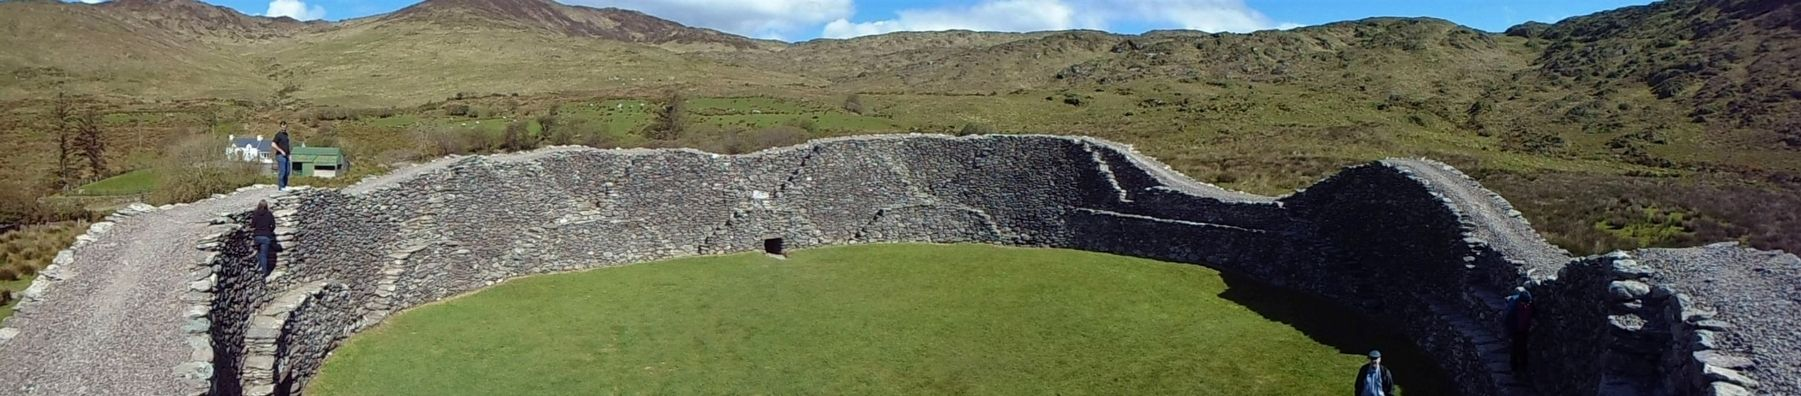 Cathair na Stéige / Staigue Fort Interior image. Click for full size.